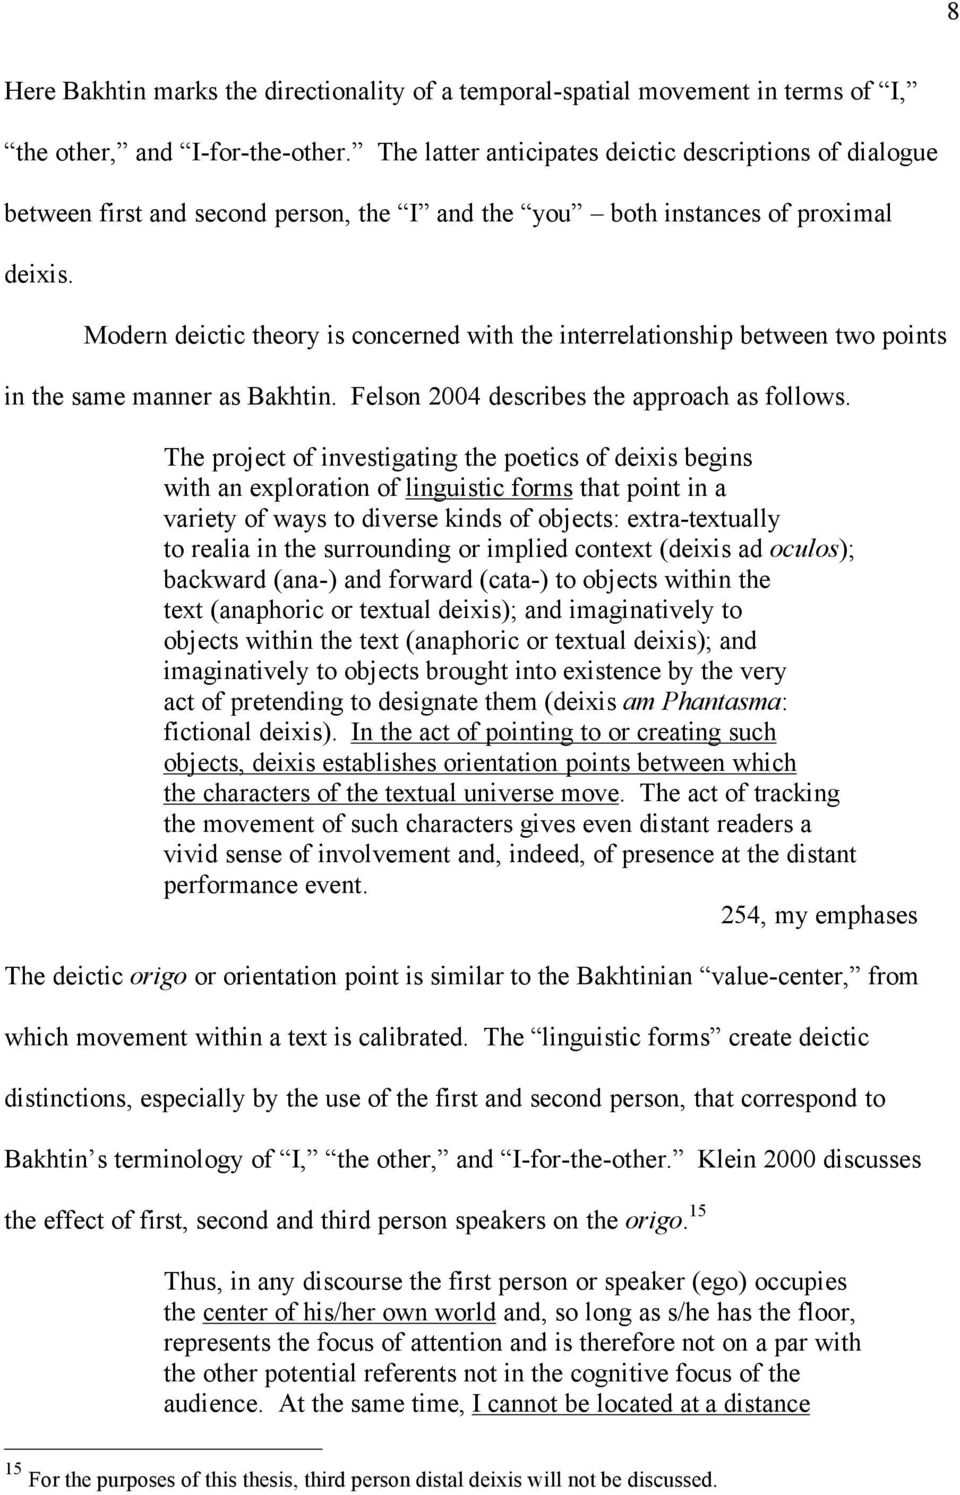 Modern deictic theory is concerned with the interrelationship between two points in the same manner as Bakhtin. Felson 2004 describes the approach as follows.